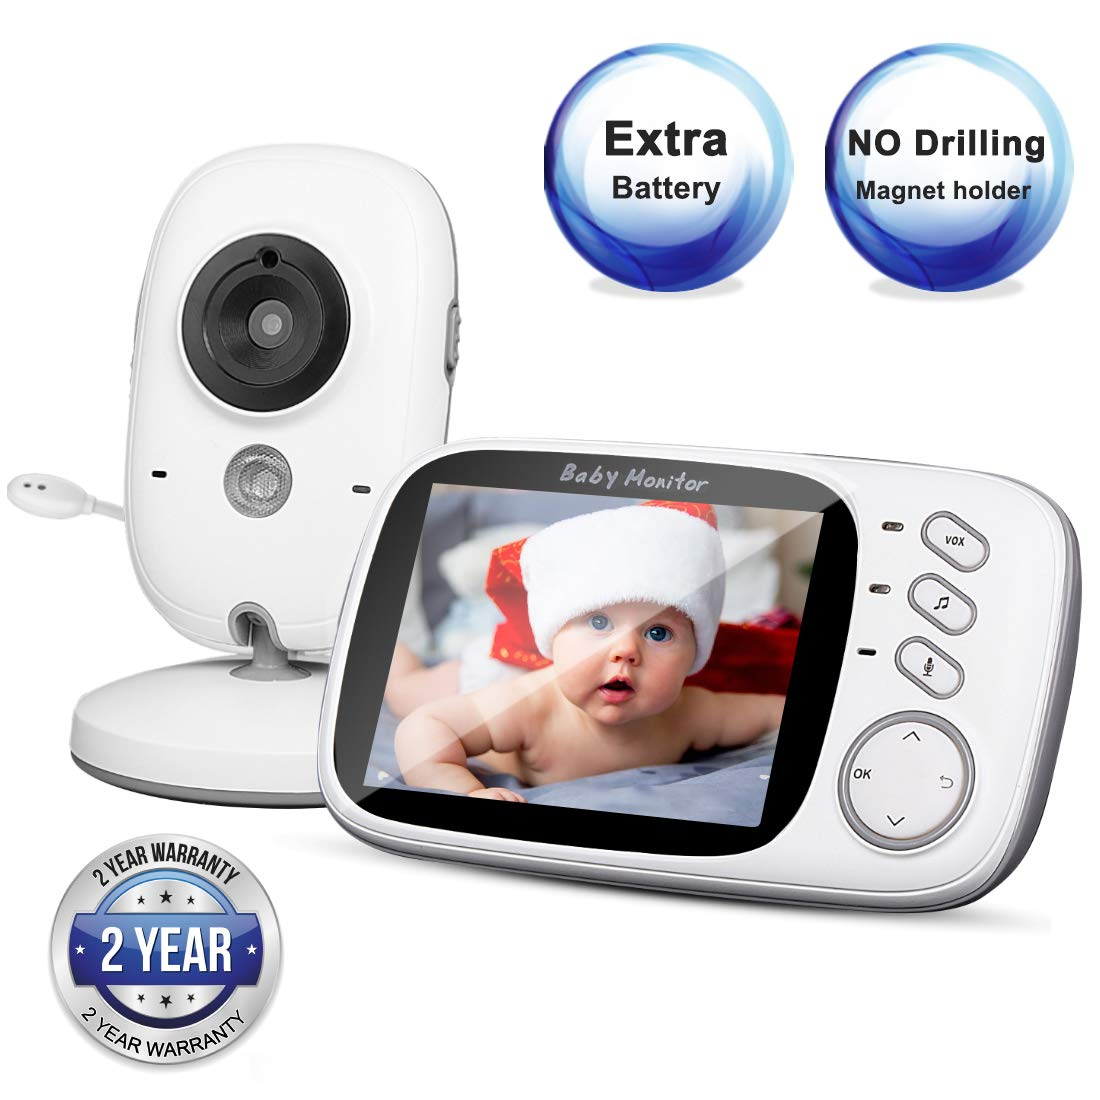 Video Baby Monitor with Camera and Audio, 3.2 LCD Large Screen, Temperature Monitor with Night Vision, Two-Way Talk, VOX, No Drilling Magnet Holder, 2 PCs Battery, for Elderly Pet Baby Nanny